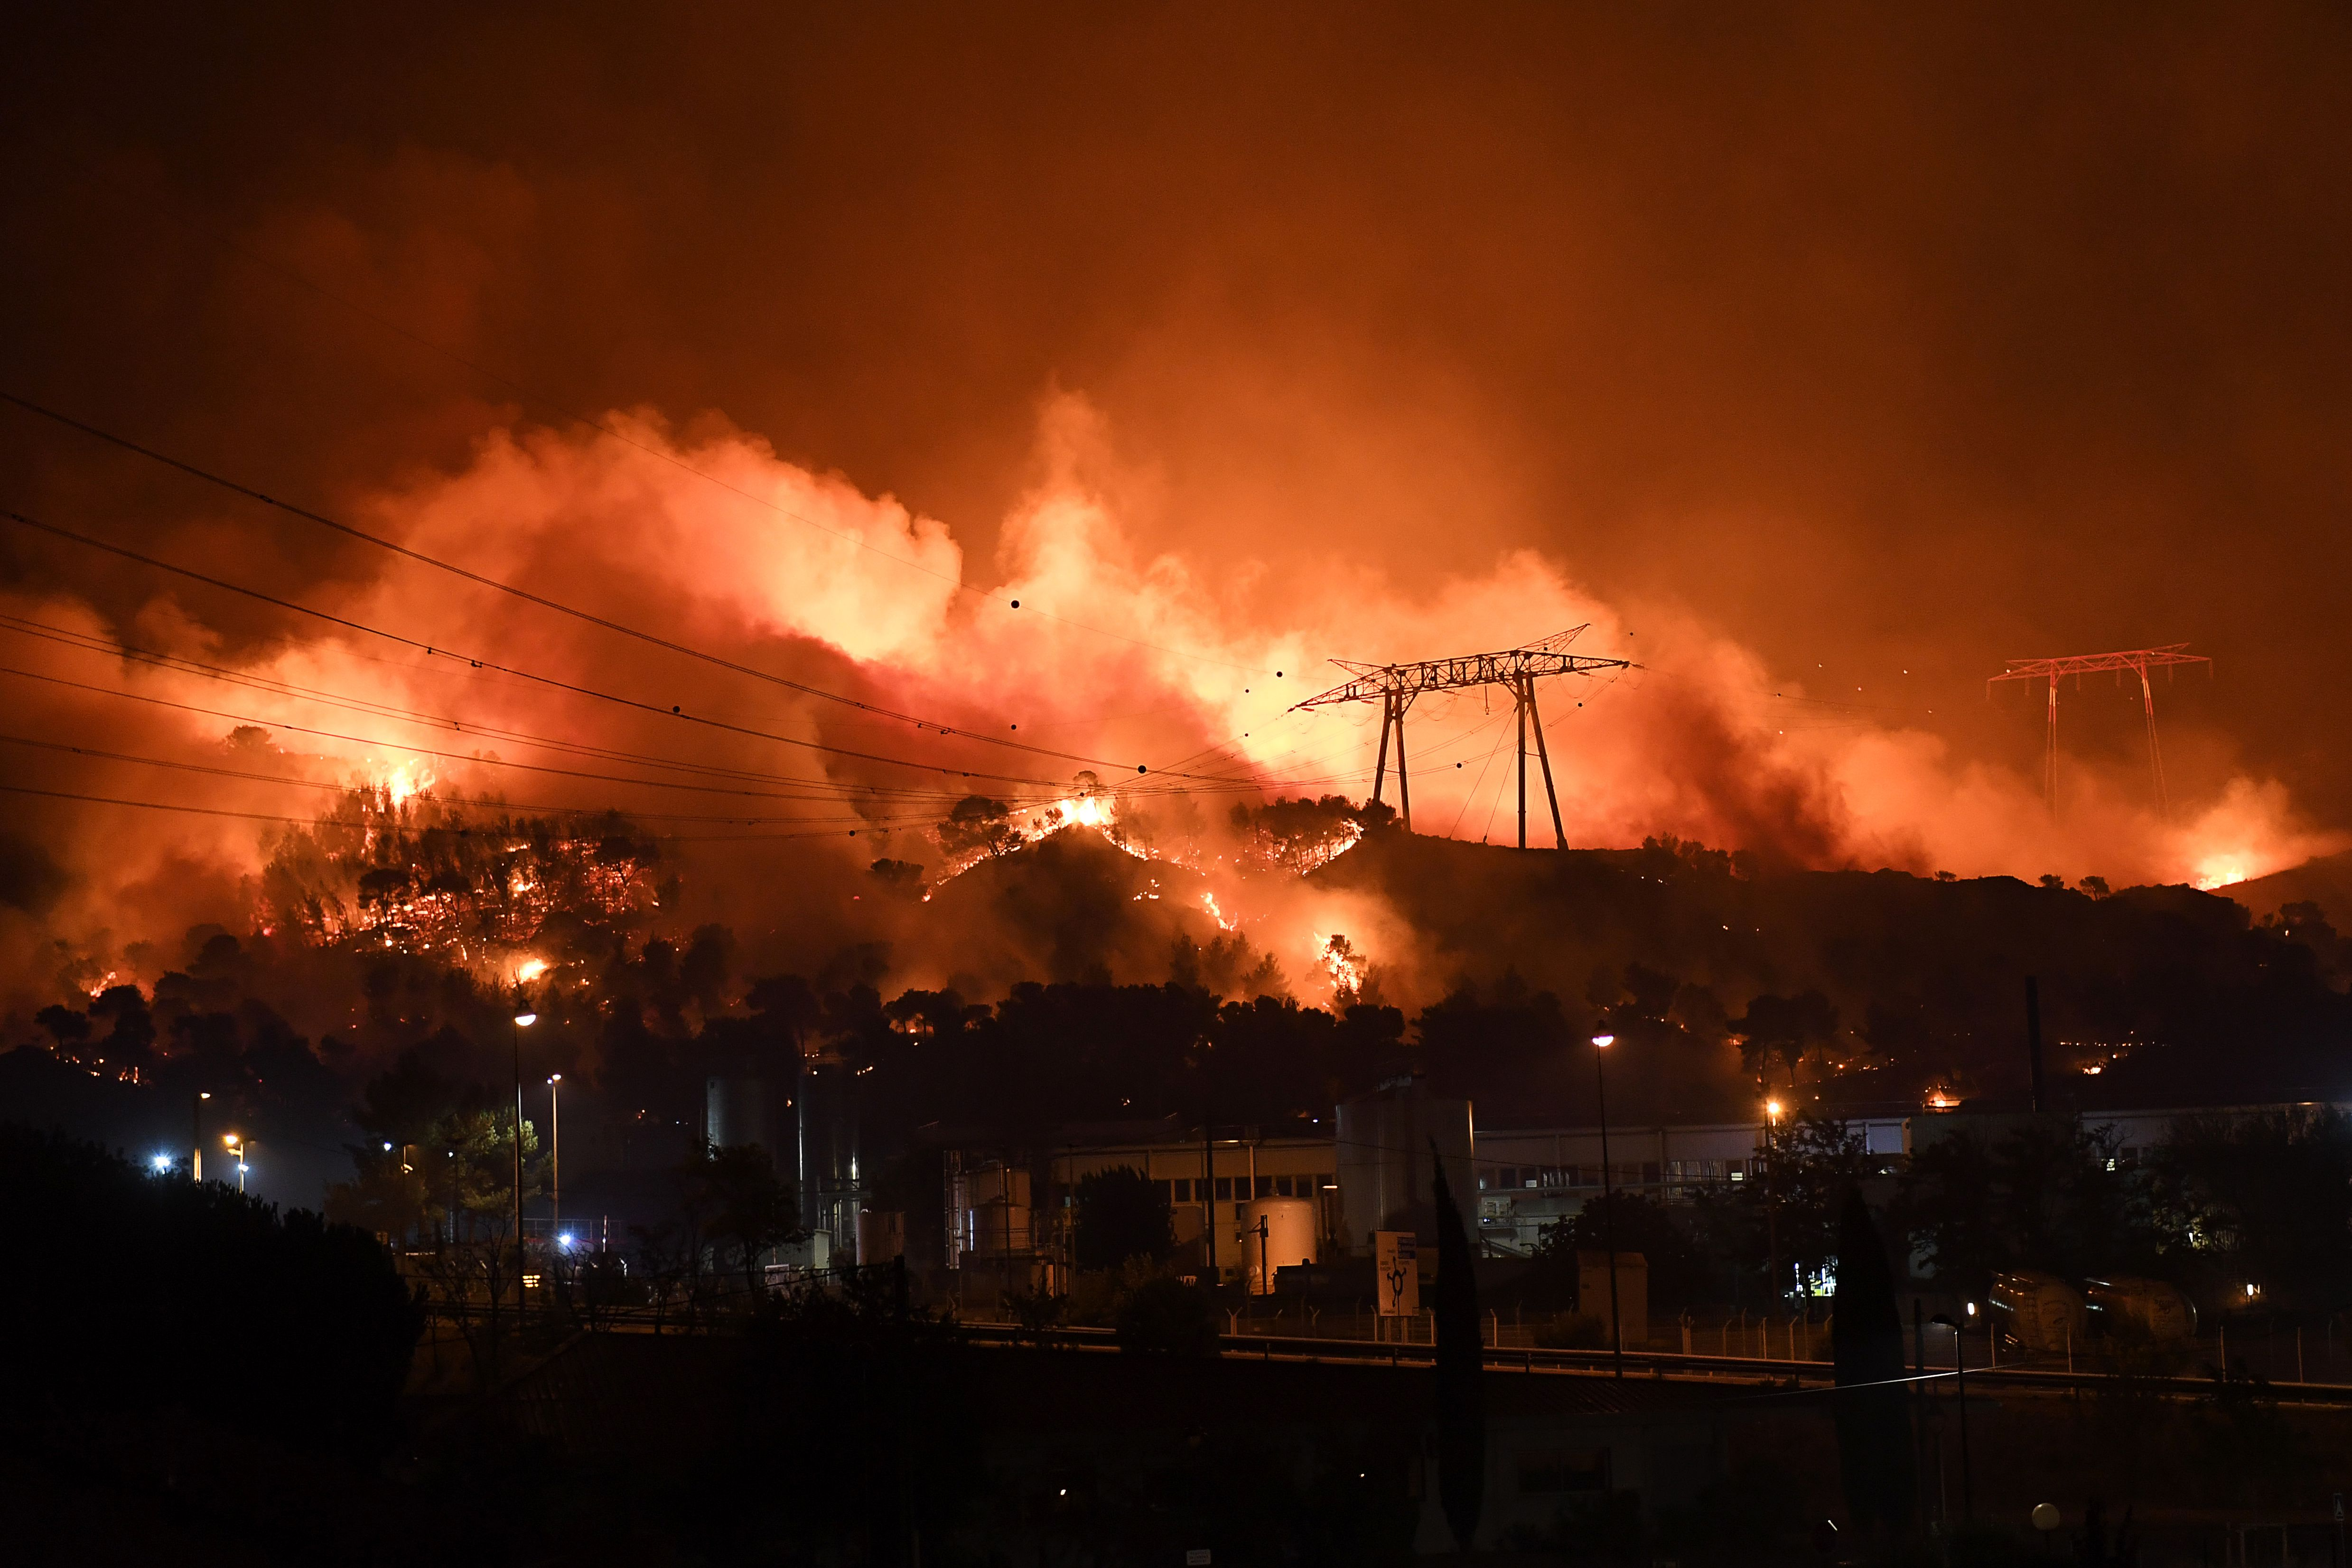 Wild fires spread in southern France, four firemen injured